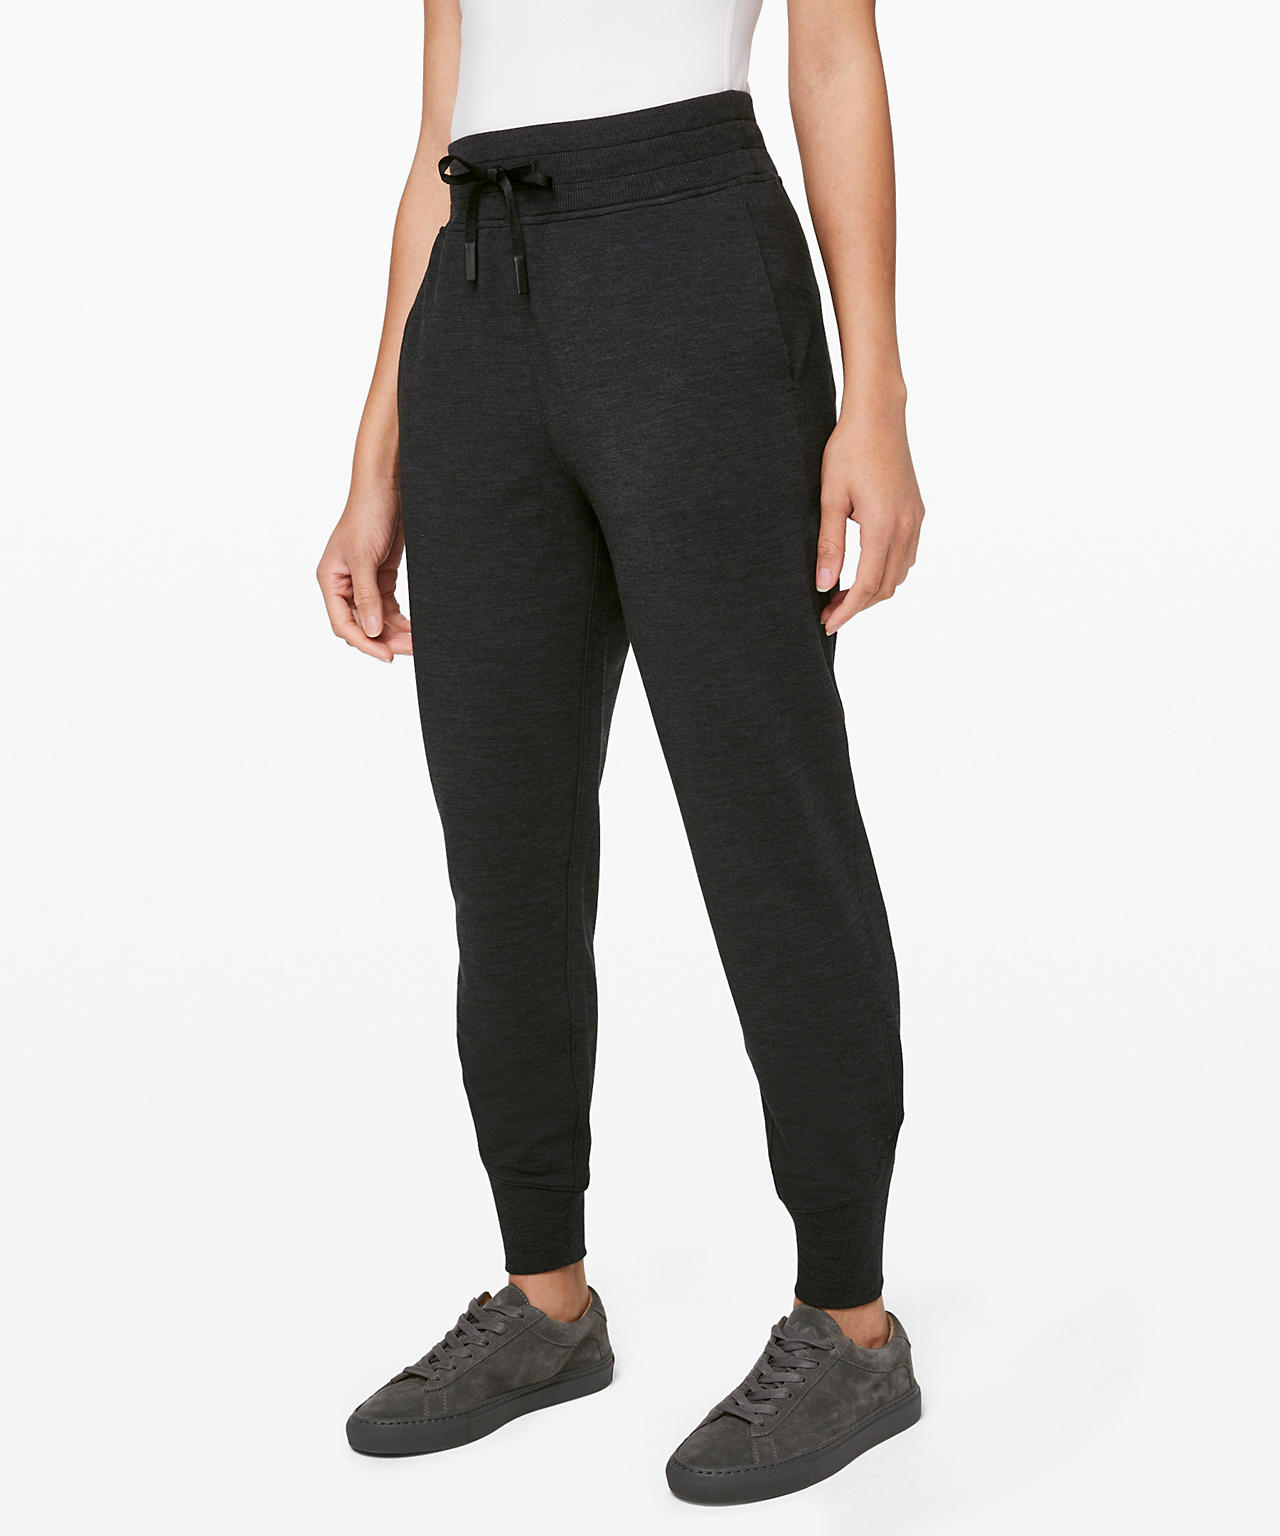 Rest For Resilience Jogger   Core Black   What's New At Lululemon